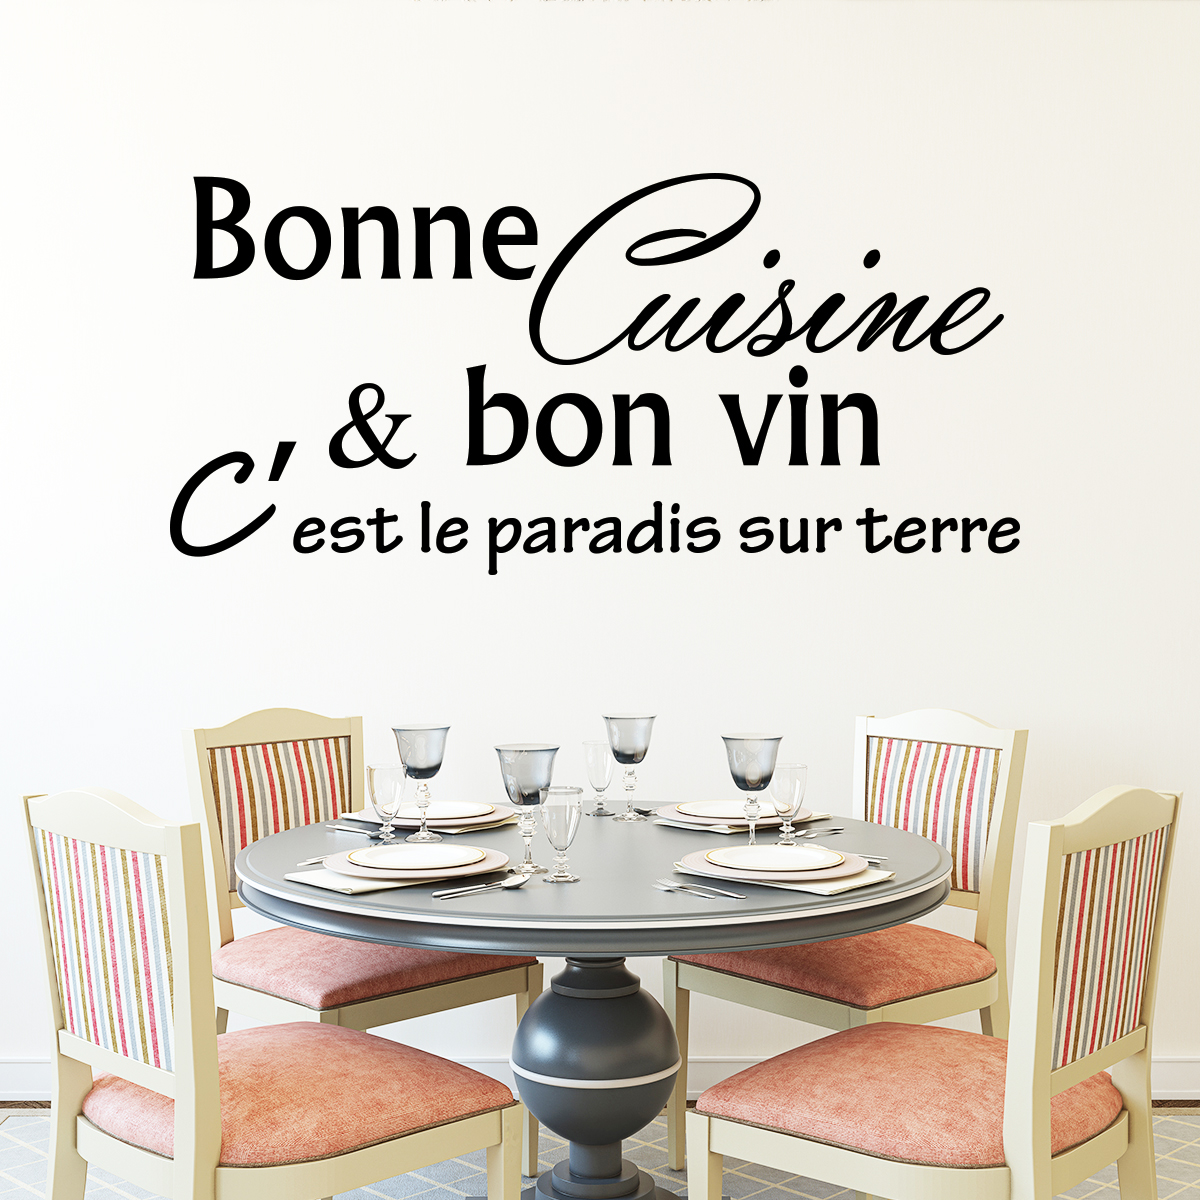 sticker bonne cuisine et bon vin c 39 est stickers citations fran ais ambiance sticker. Black Bedroom Furniture Sets. Home Design Ideas